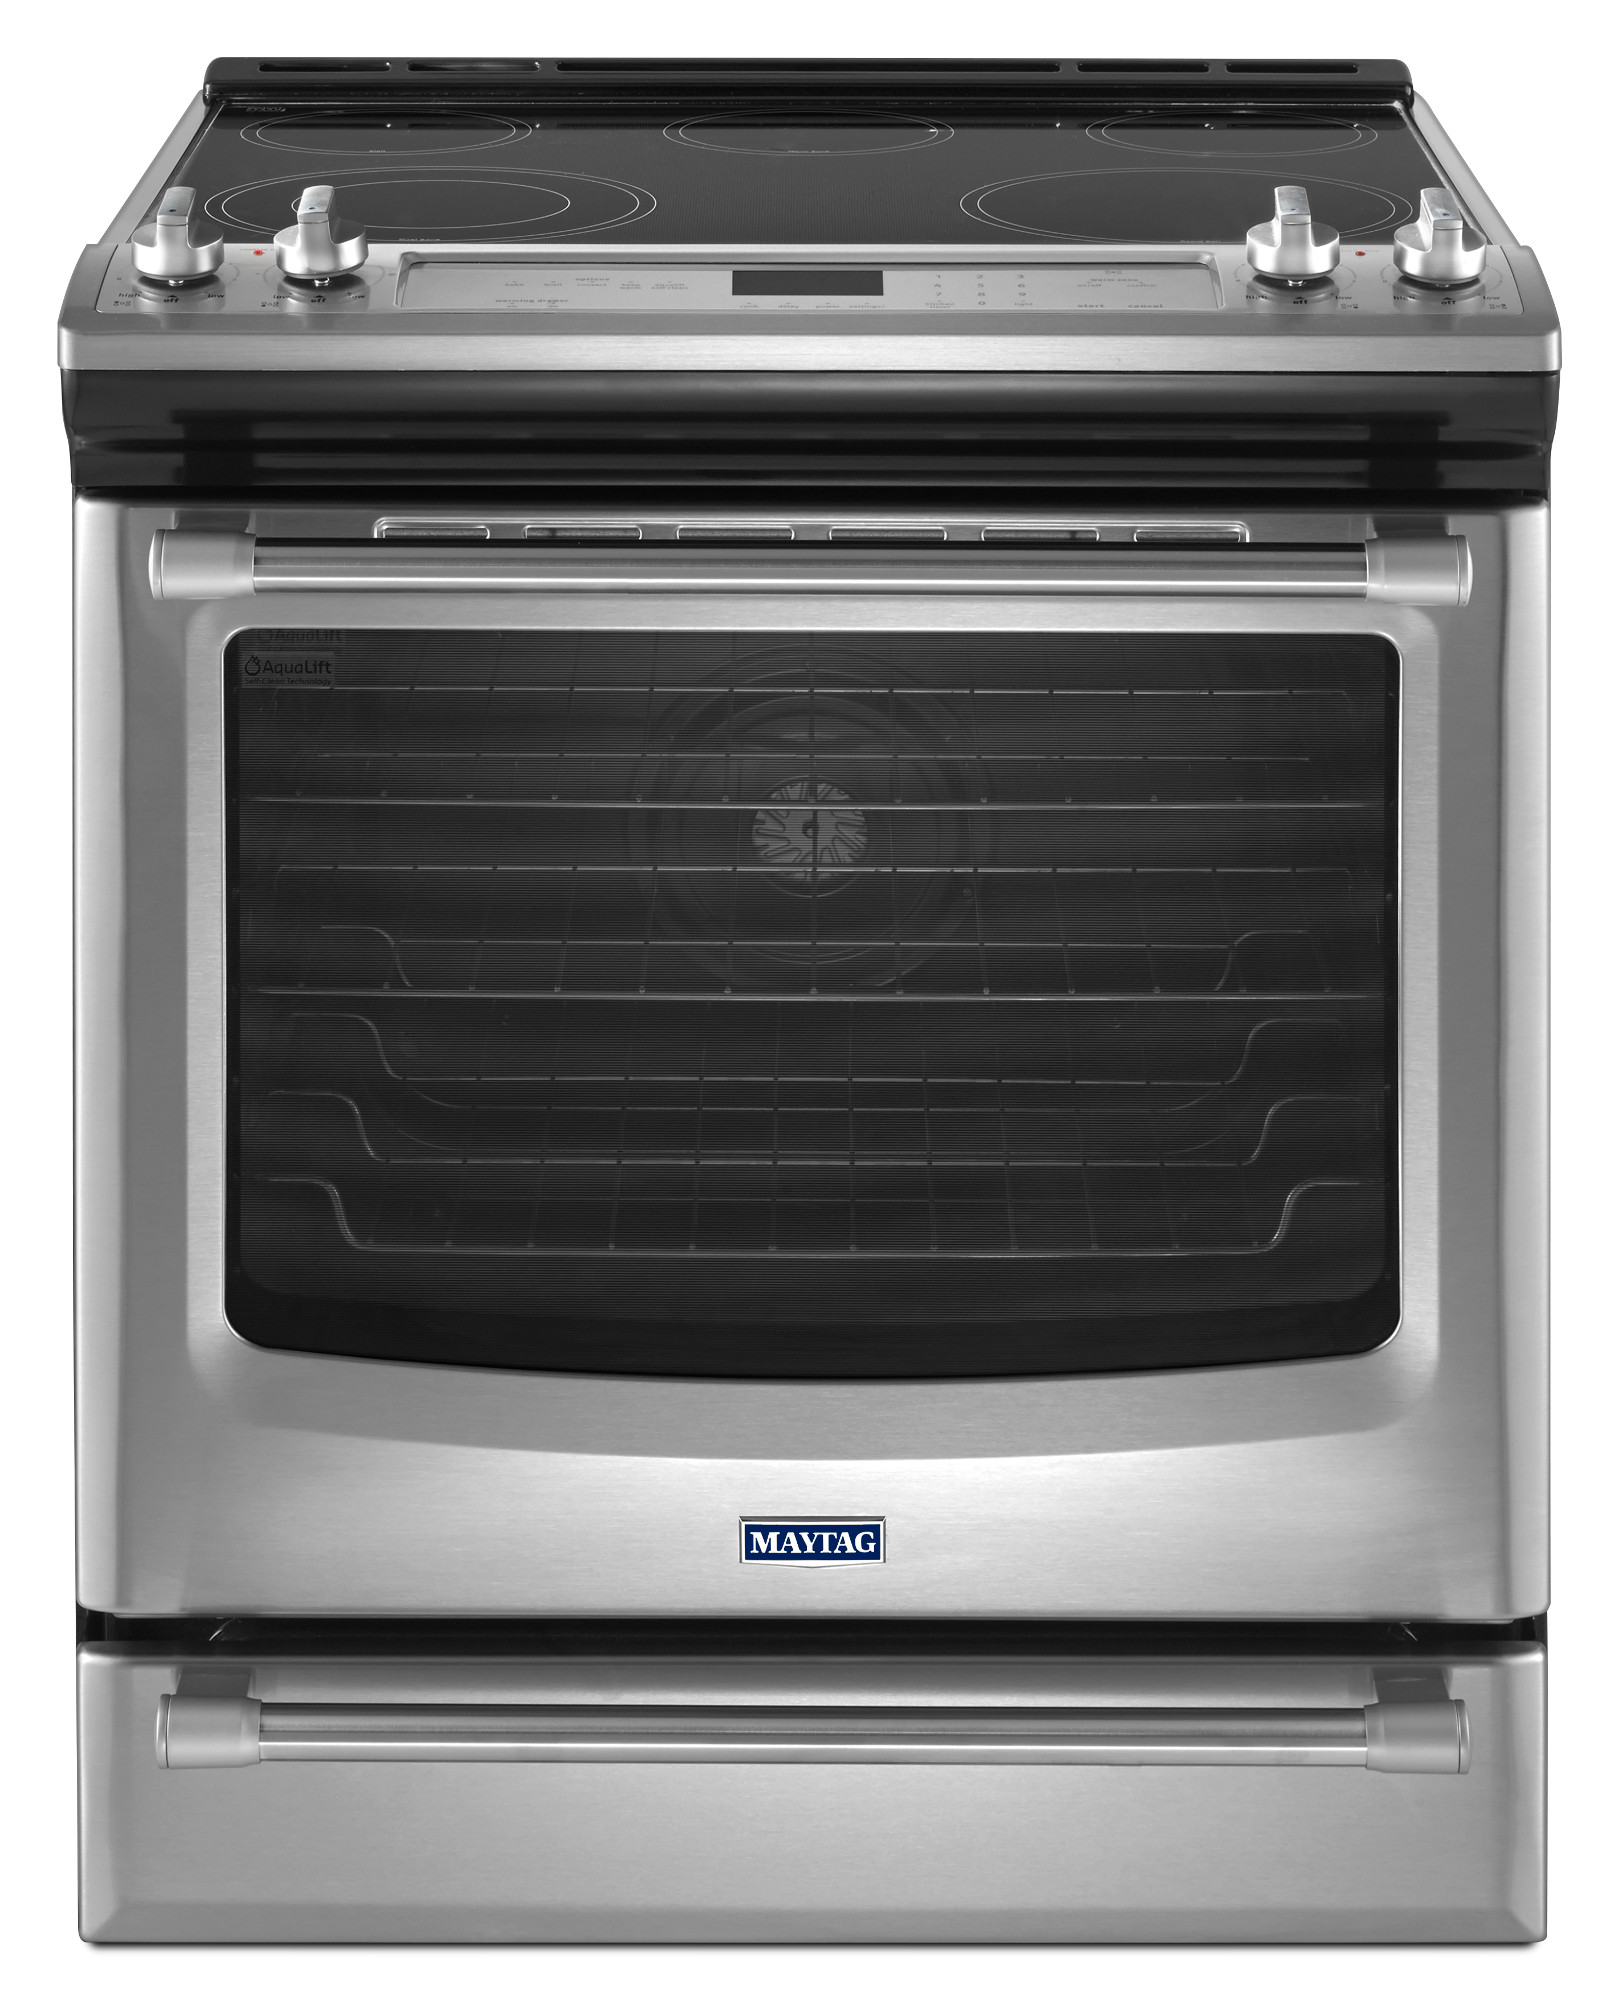 Maytag MES8880DS 6.4 cu. ft. Slide-in Electric Range - Stainless Steel